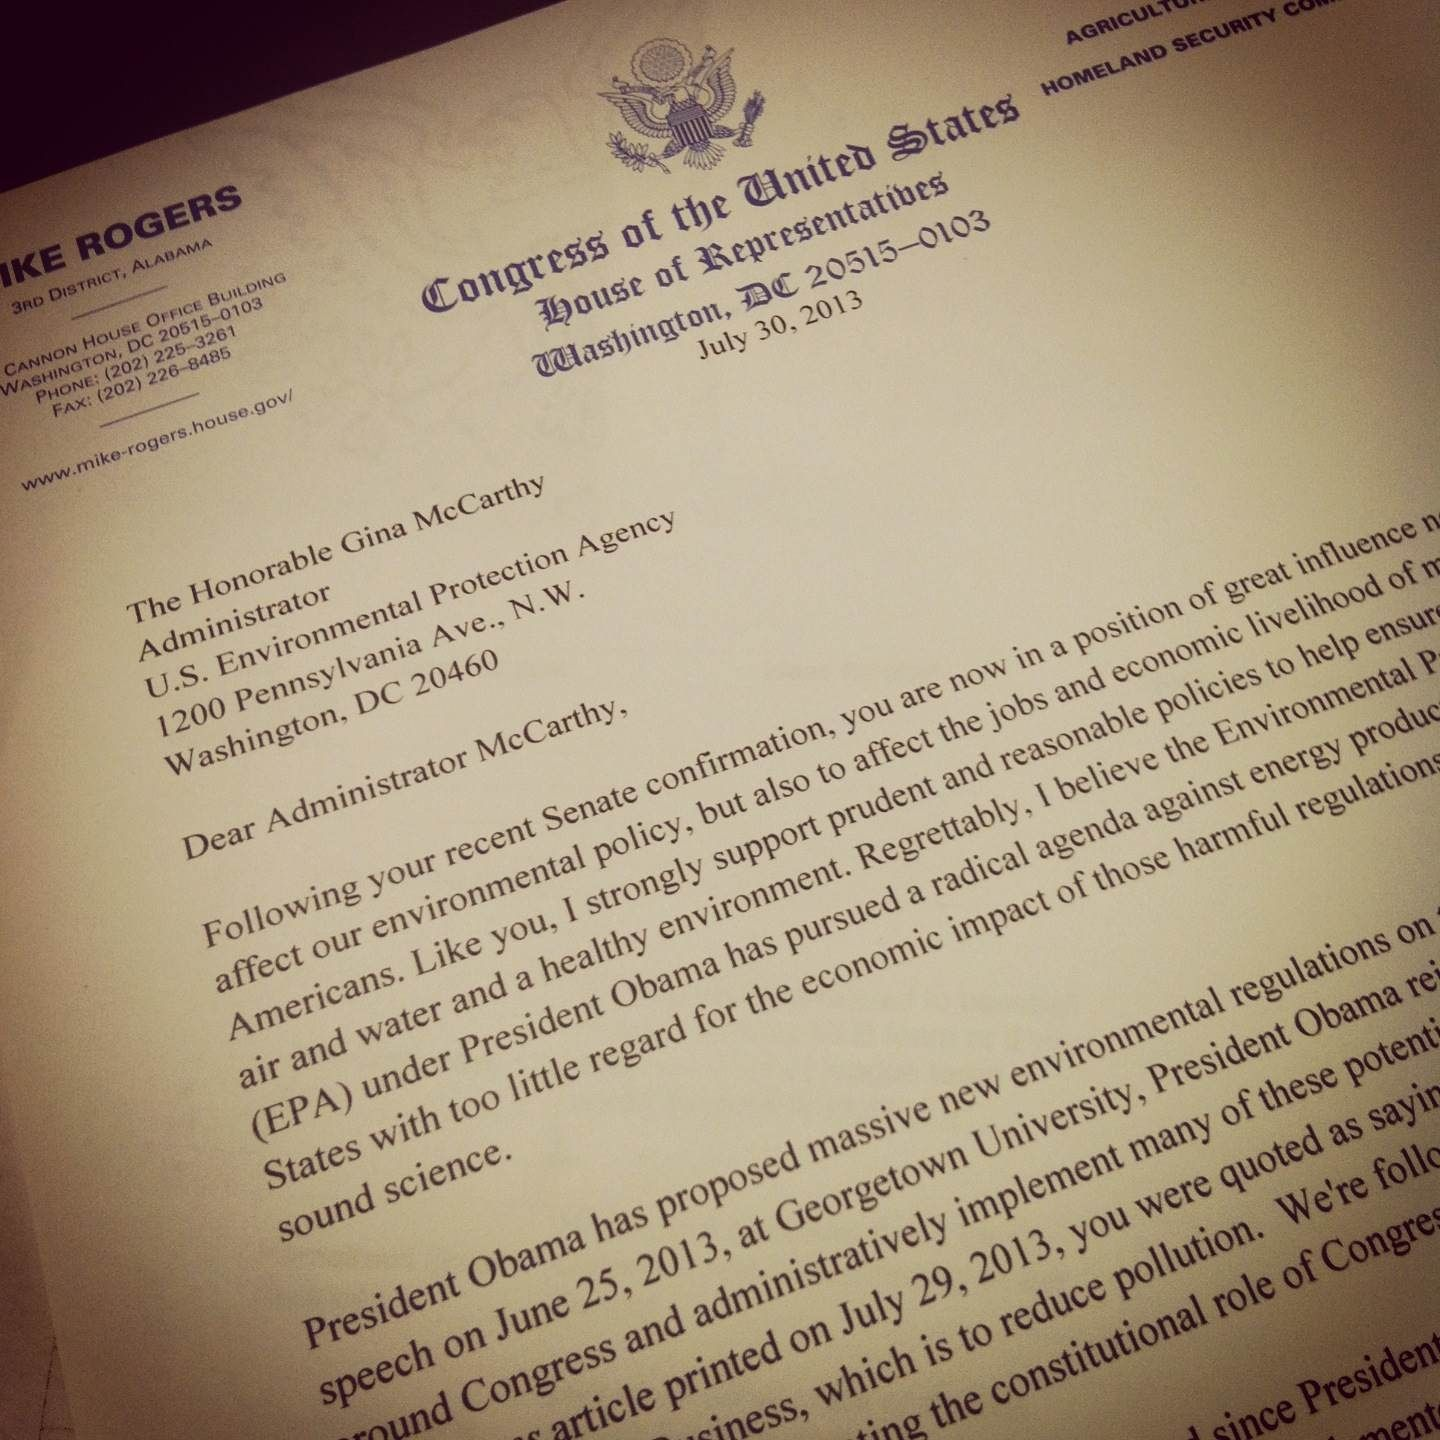 This week, I wrote a letter to EPA Administrator Gina McCarthy urging her to ensure that any new regulations for America's energy sector do not threaten jobs.  Read more here: http://mike-rogers.house.gov/press-release/rogers-epa-administrator-it's-all-about-jobs